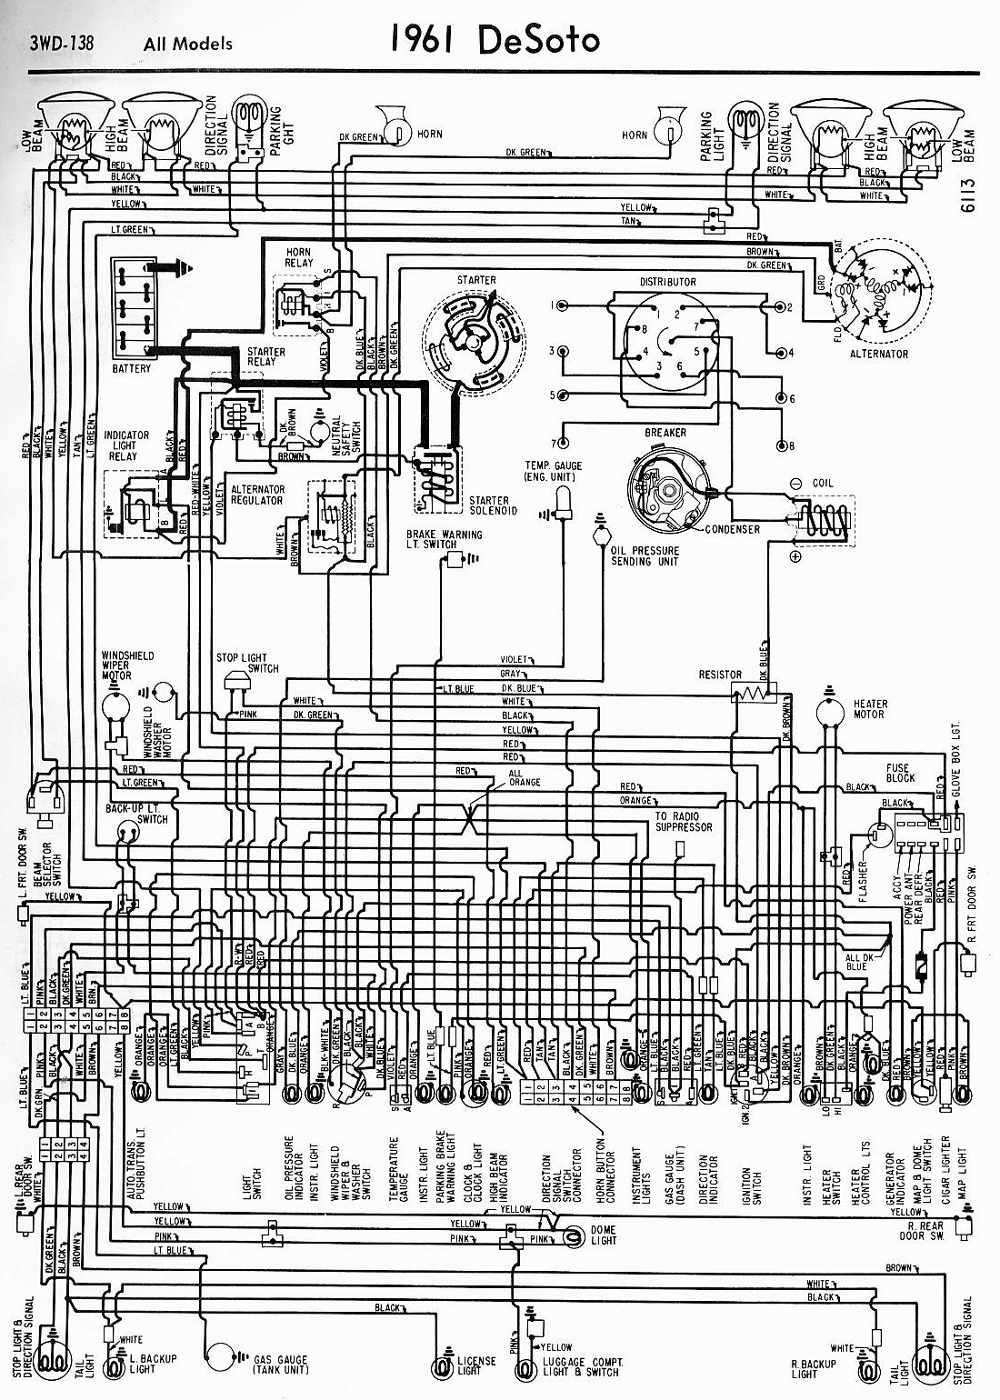 small resolution of 1941 desoto wiring diagrams 27 wiring diagram images 1941 chevrolet wiring diagram 1941 chevrolet wiring diagram